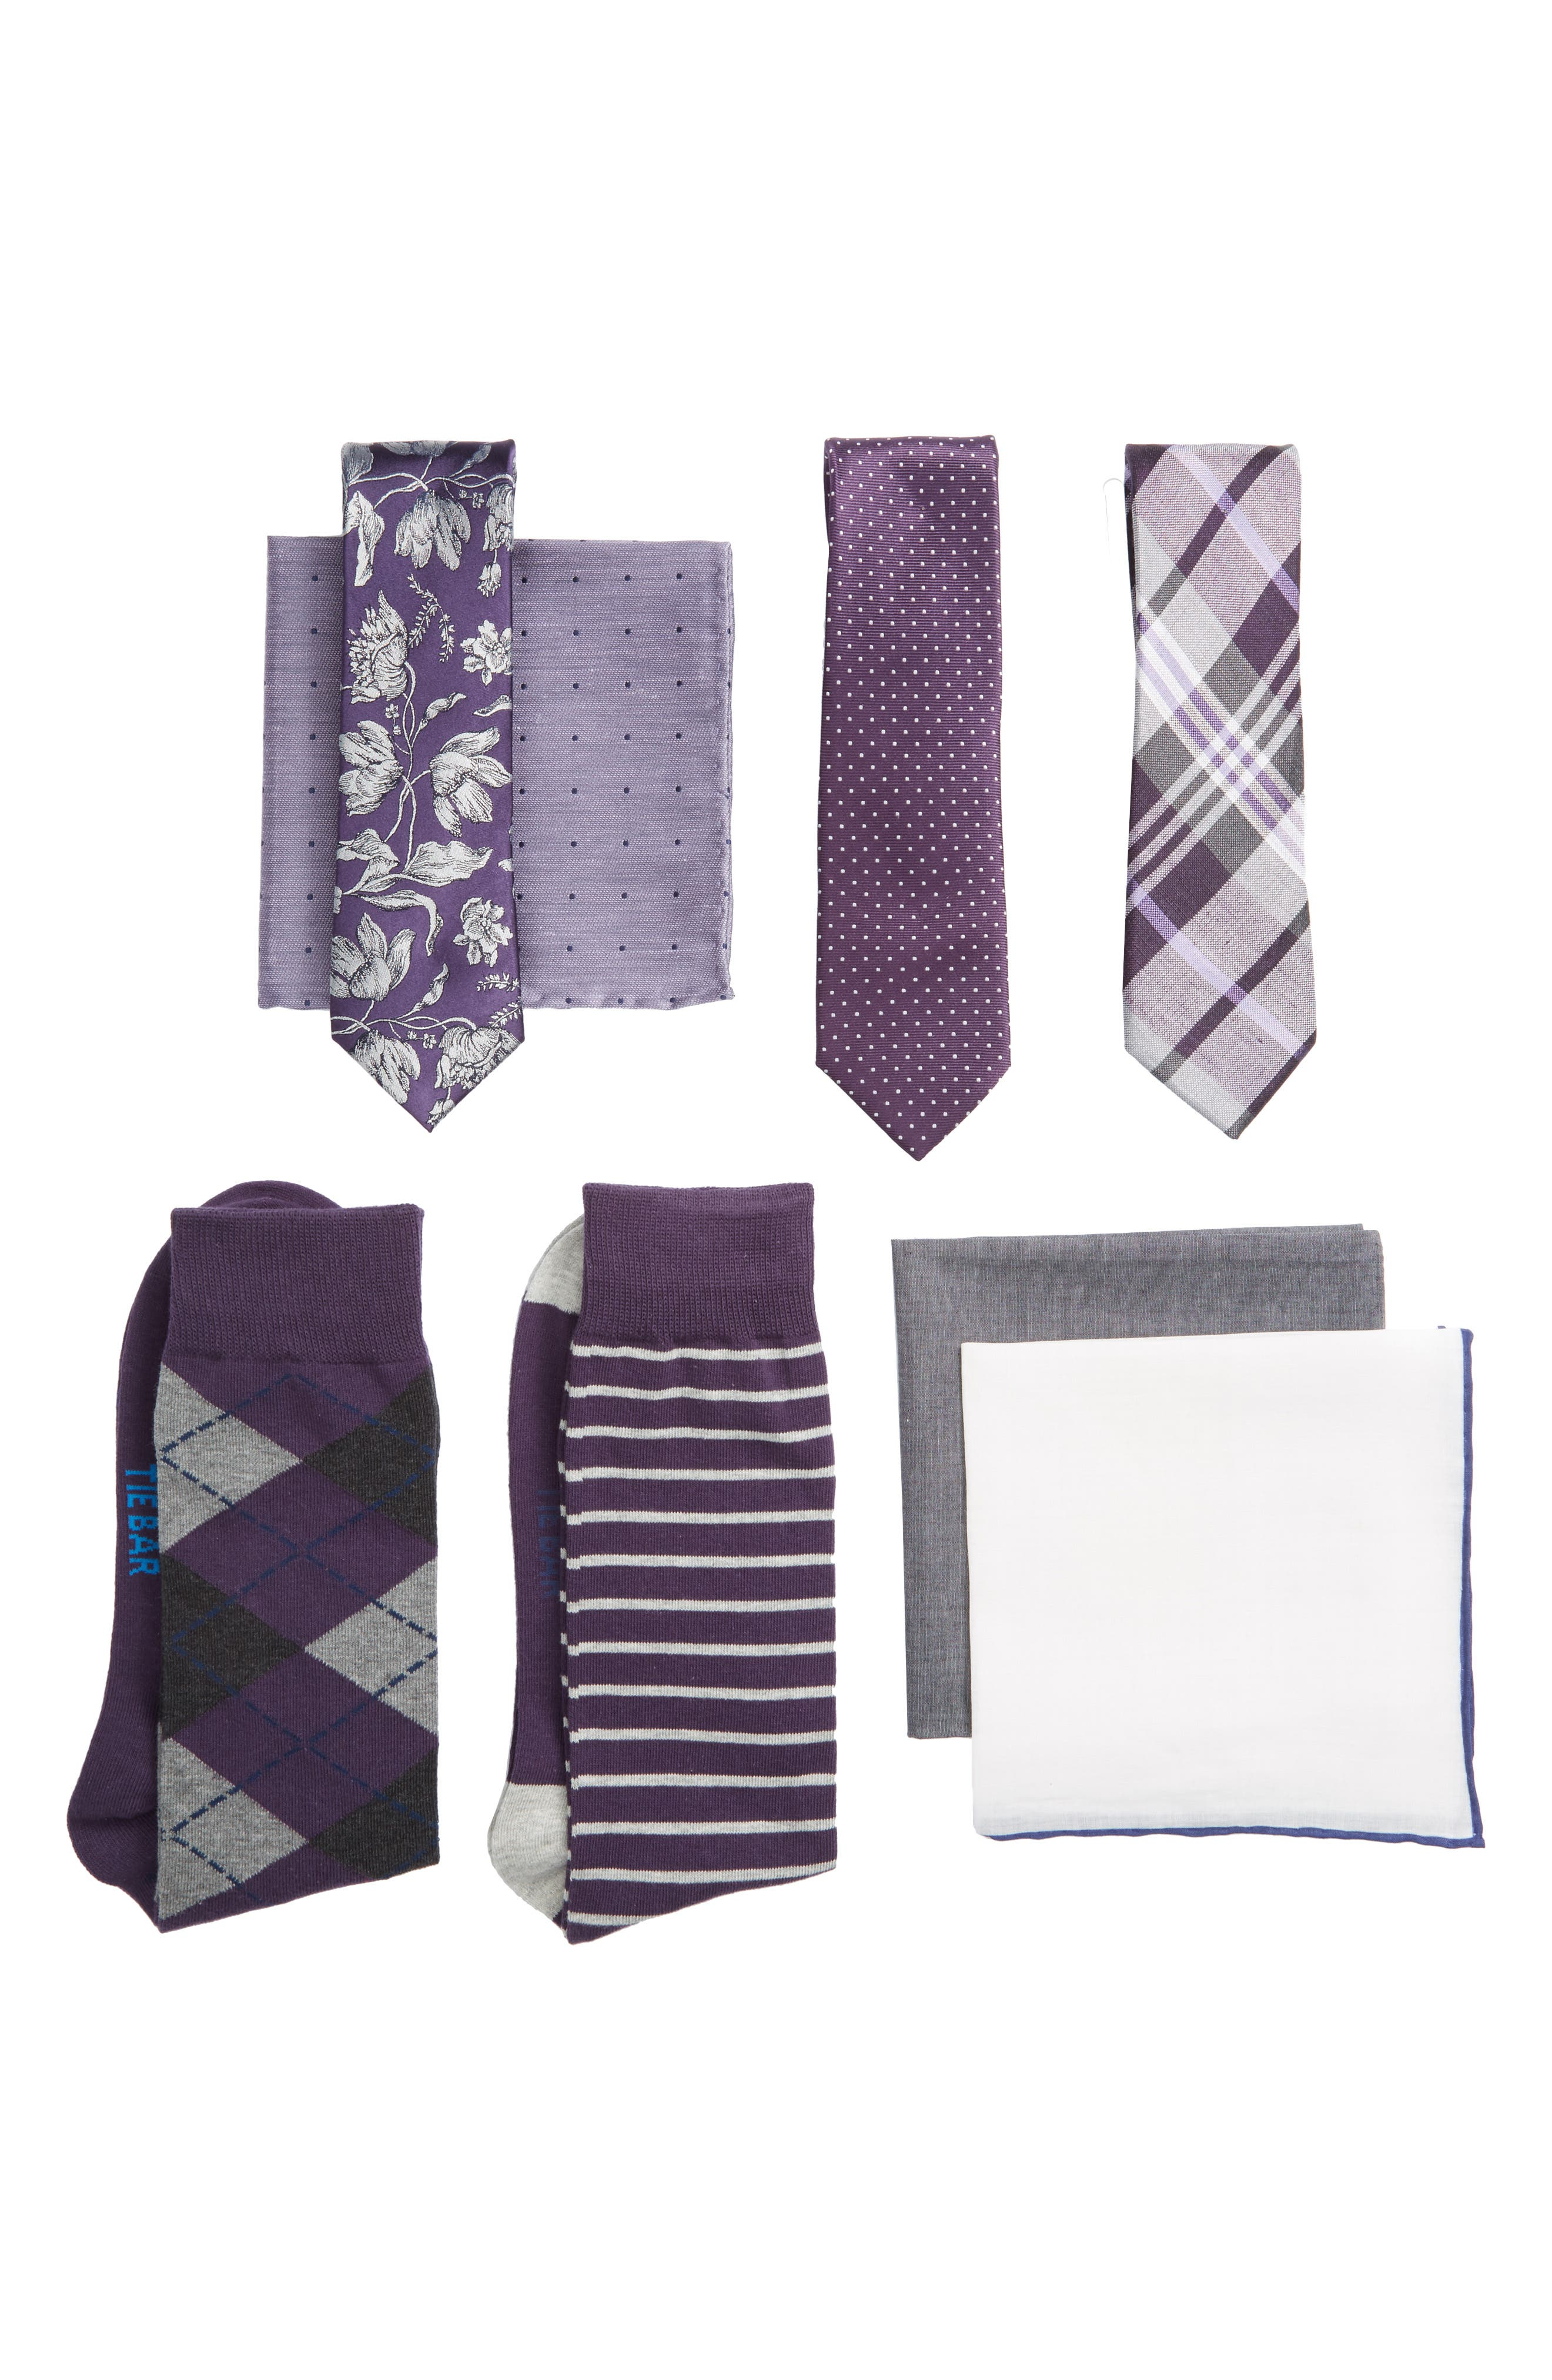 The Tie Bar Large Eggplant Style Box